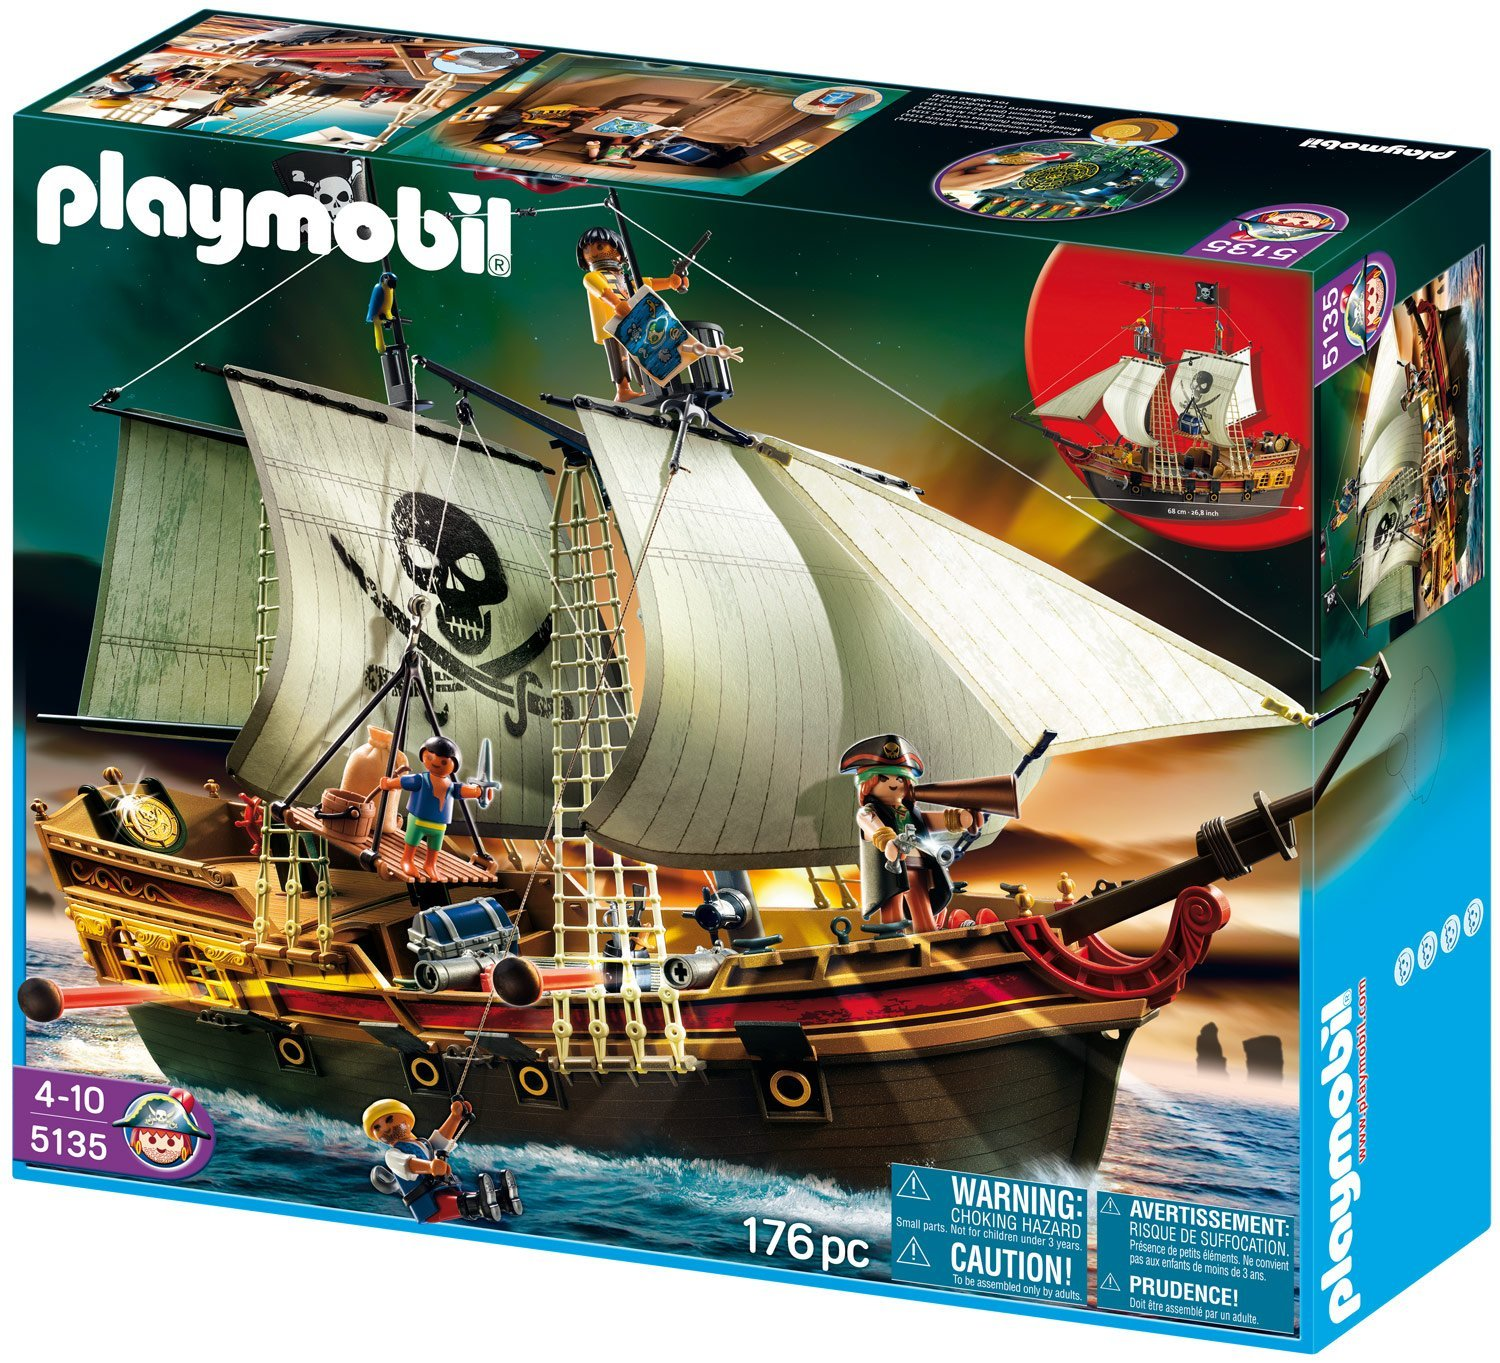 playmobil piraten beuteschiff 5135 f r 52 92 inkl versand. Black Bedroom Furniture Sets. Home Design Ideas